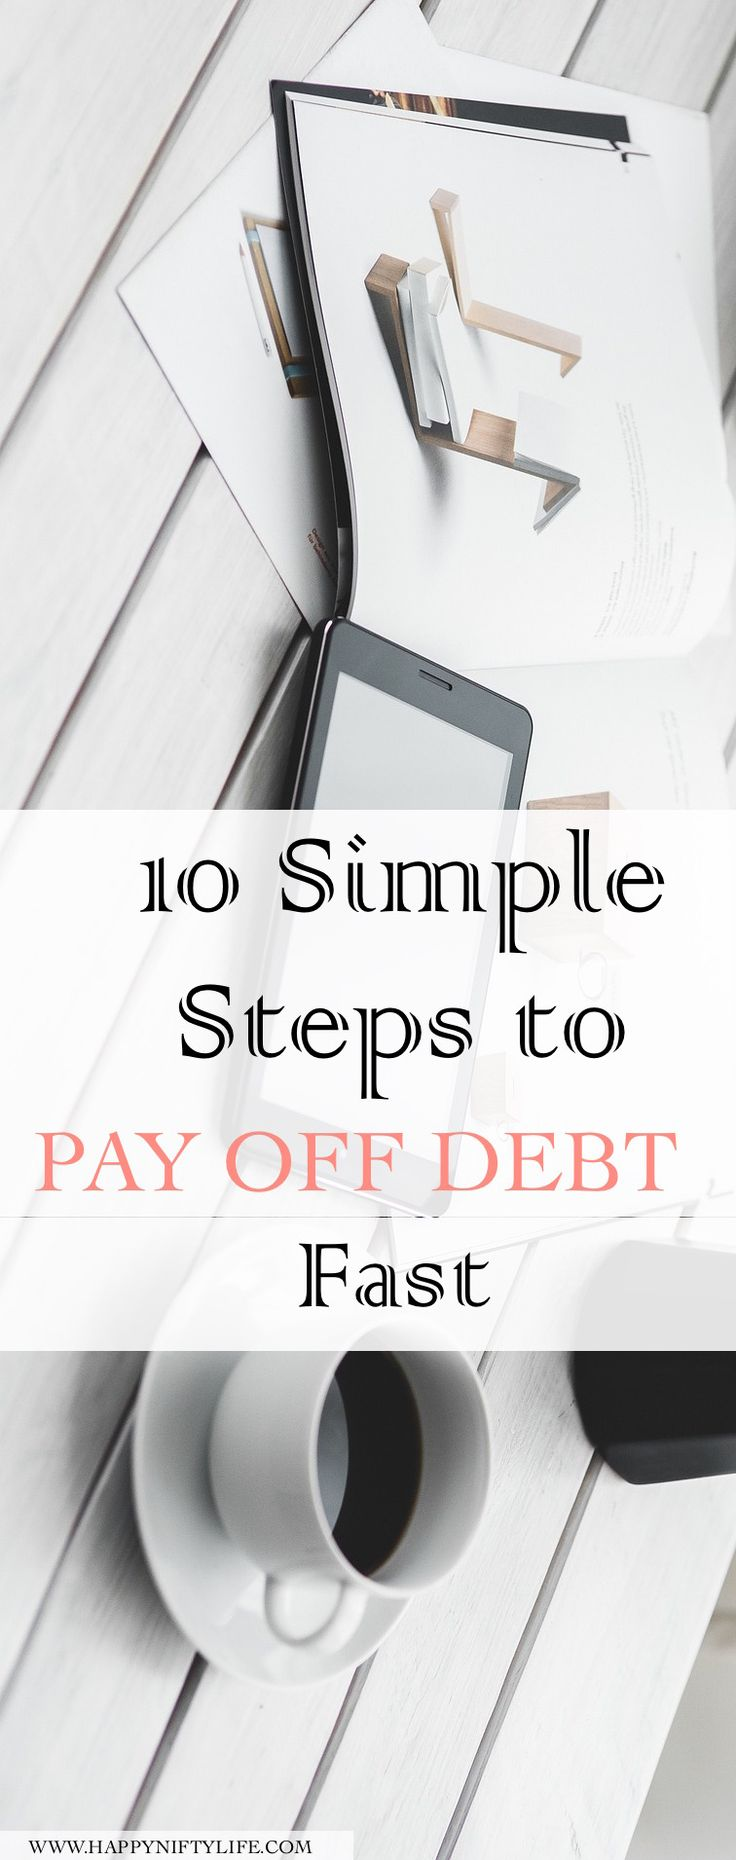 pay off debt fast saving more money | money saving tips | paying off debt | simple easy steps | save money now